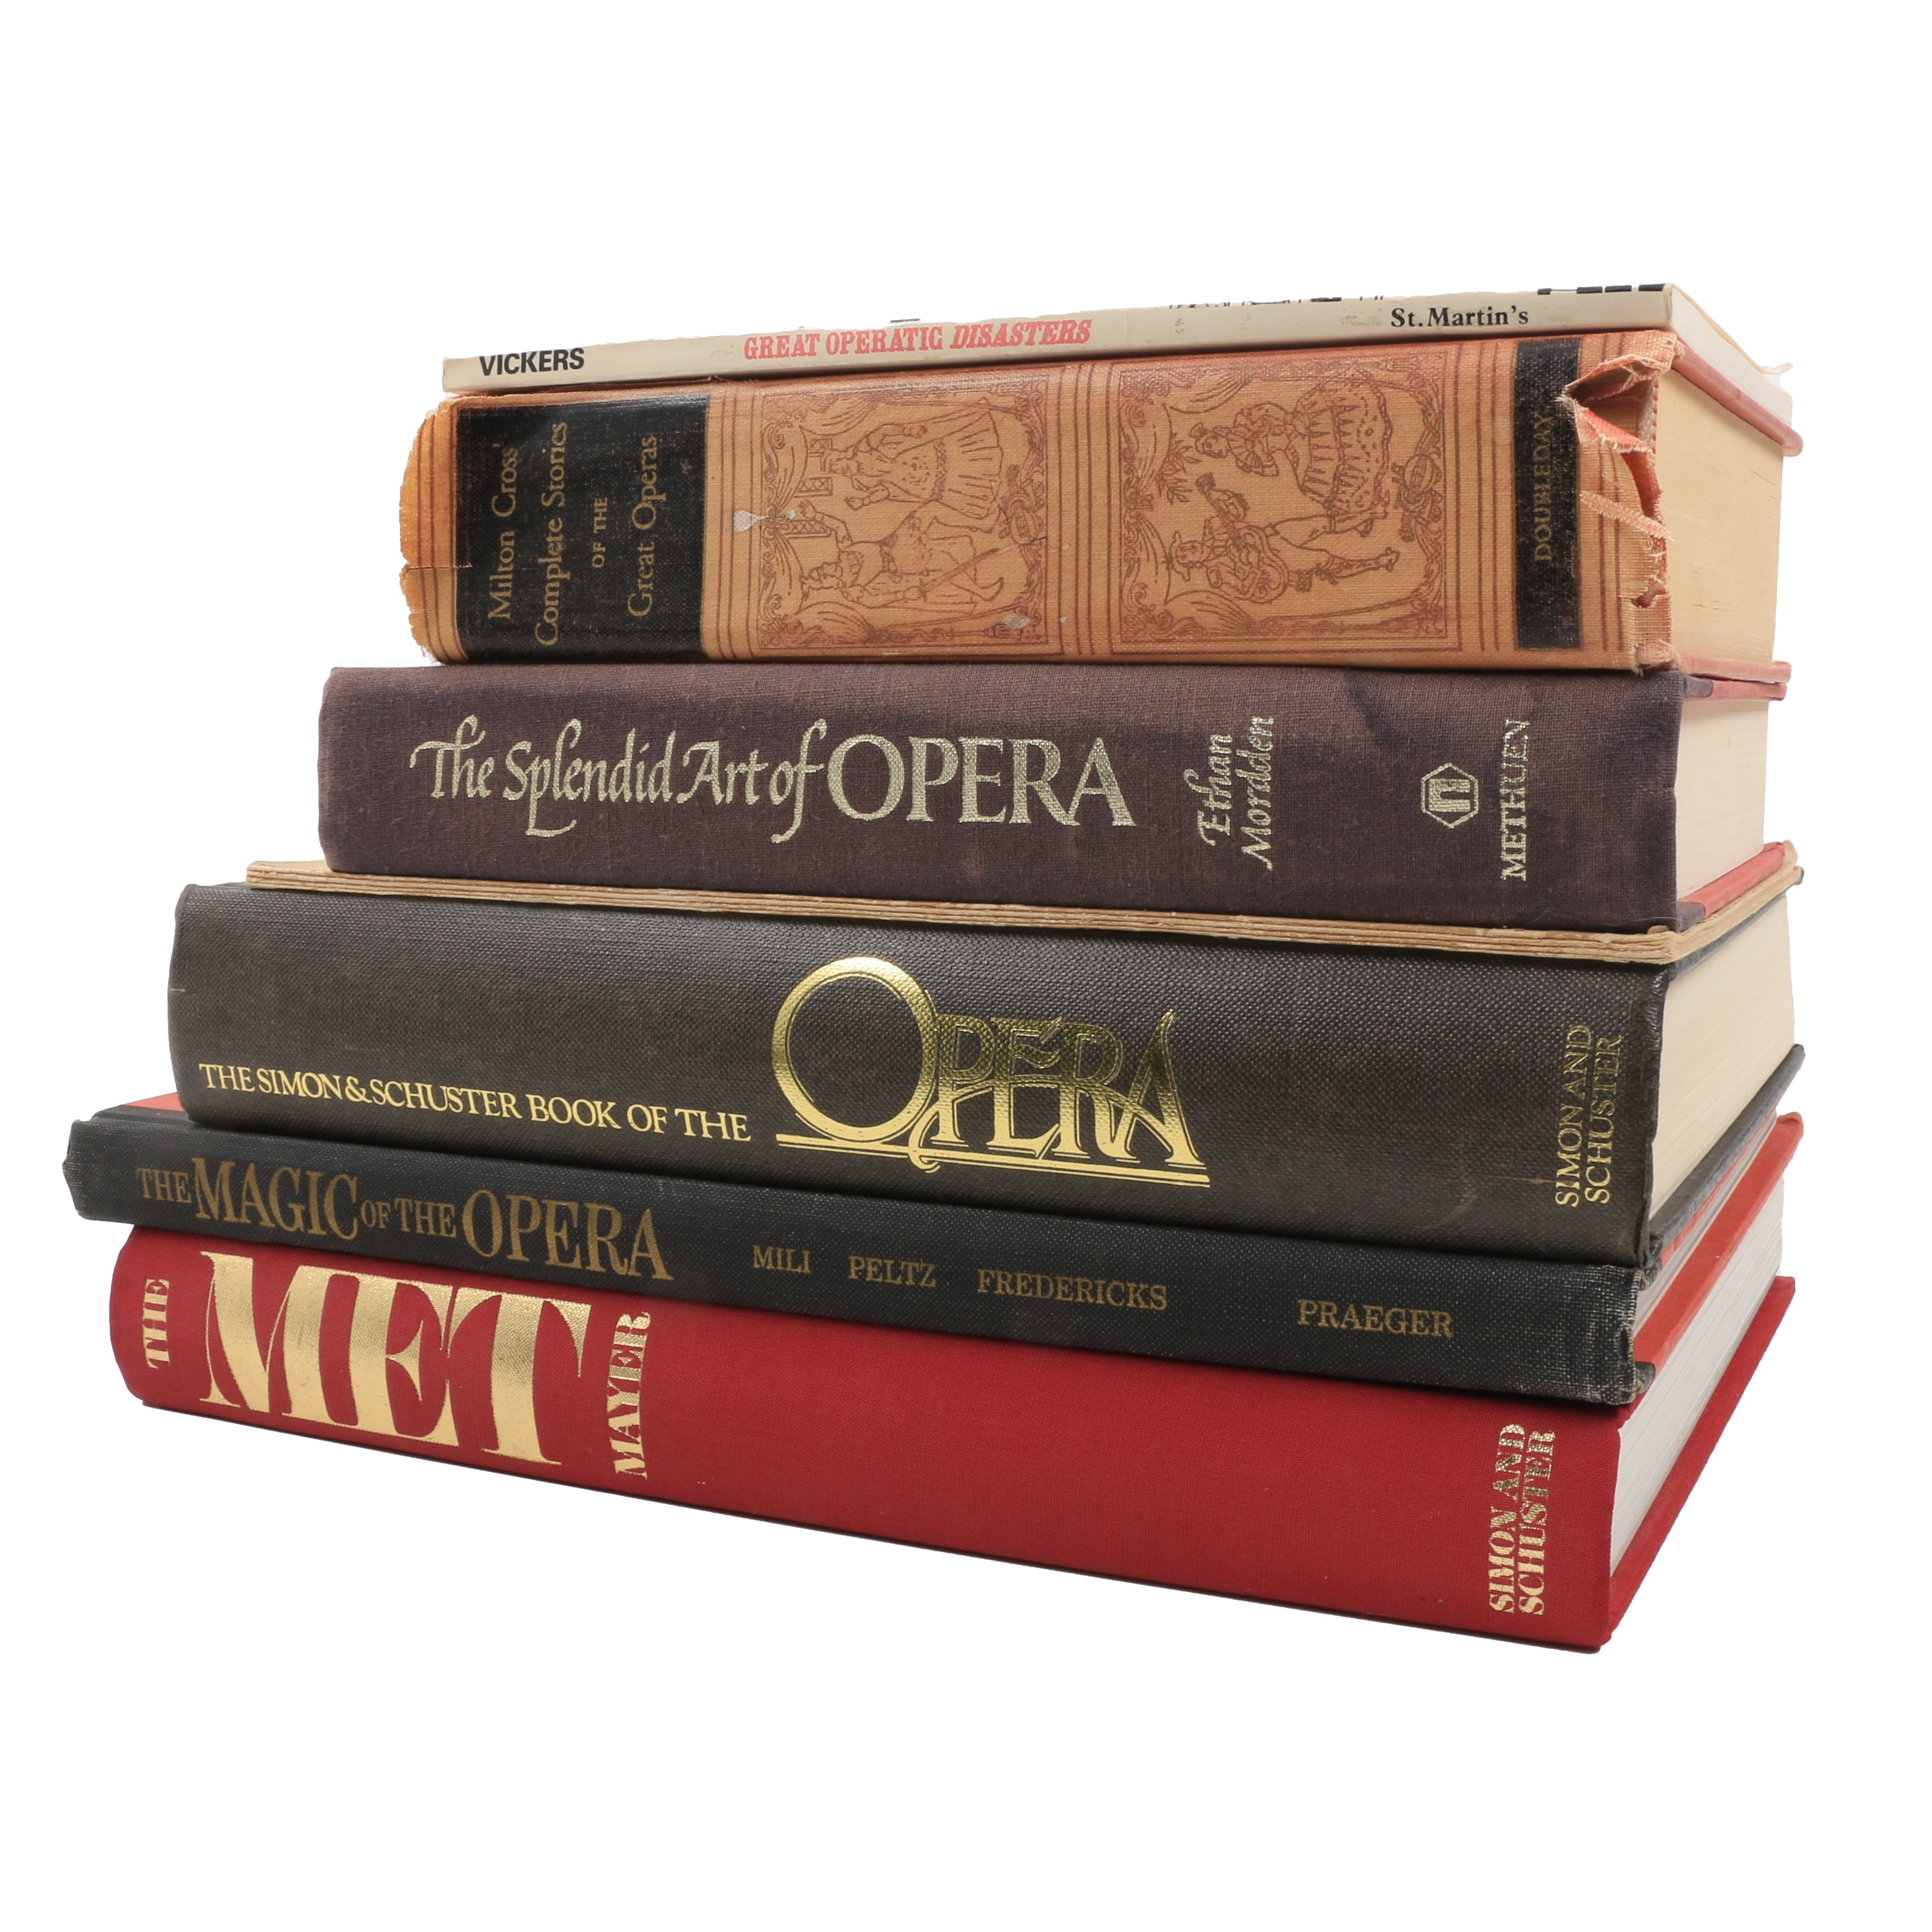 A Collection of Opera Books